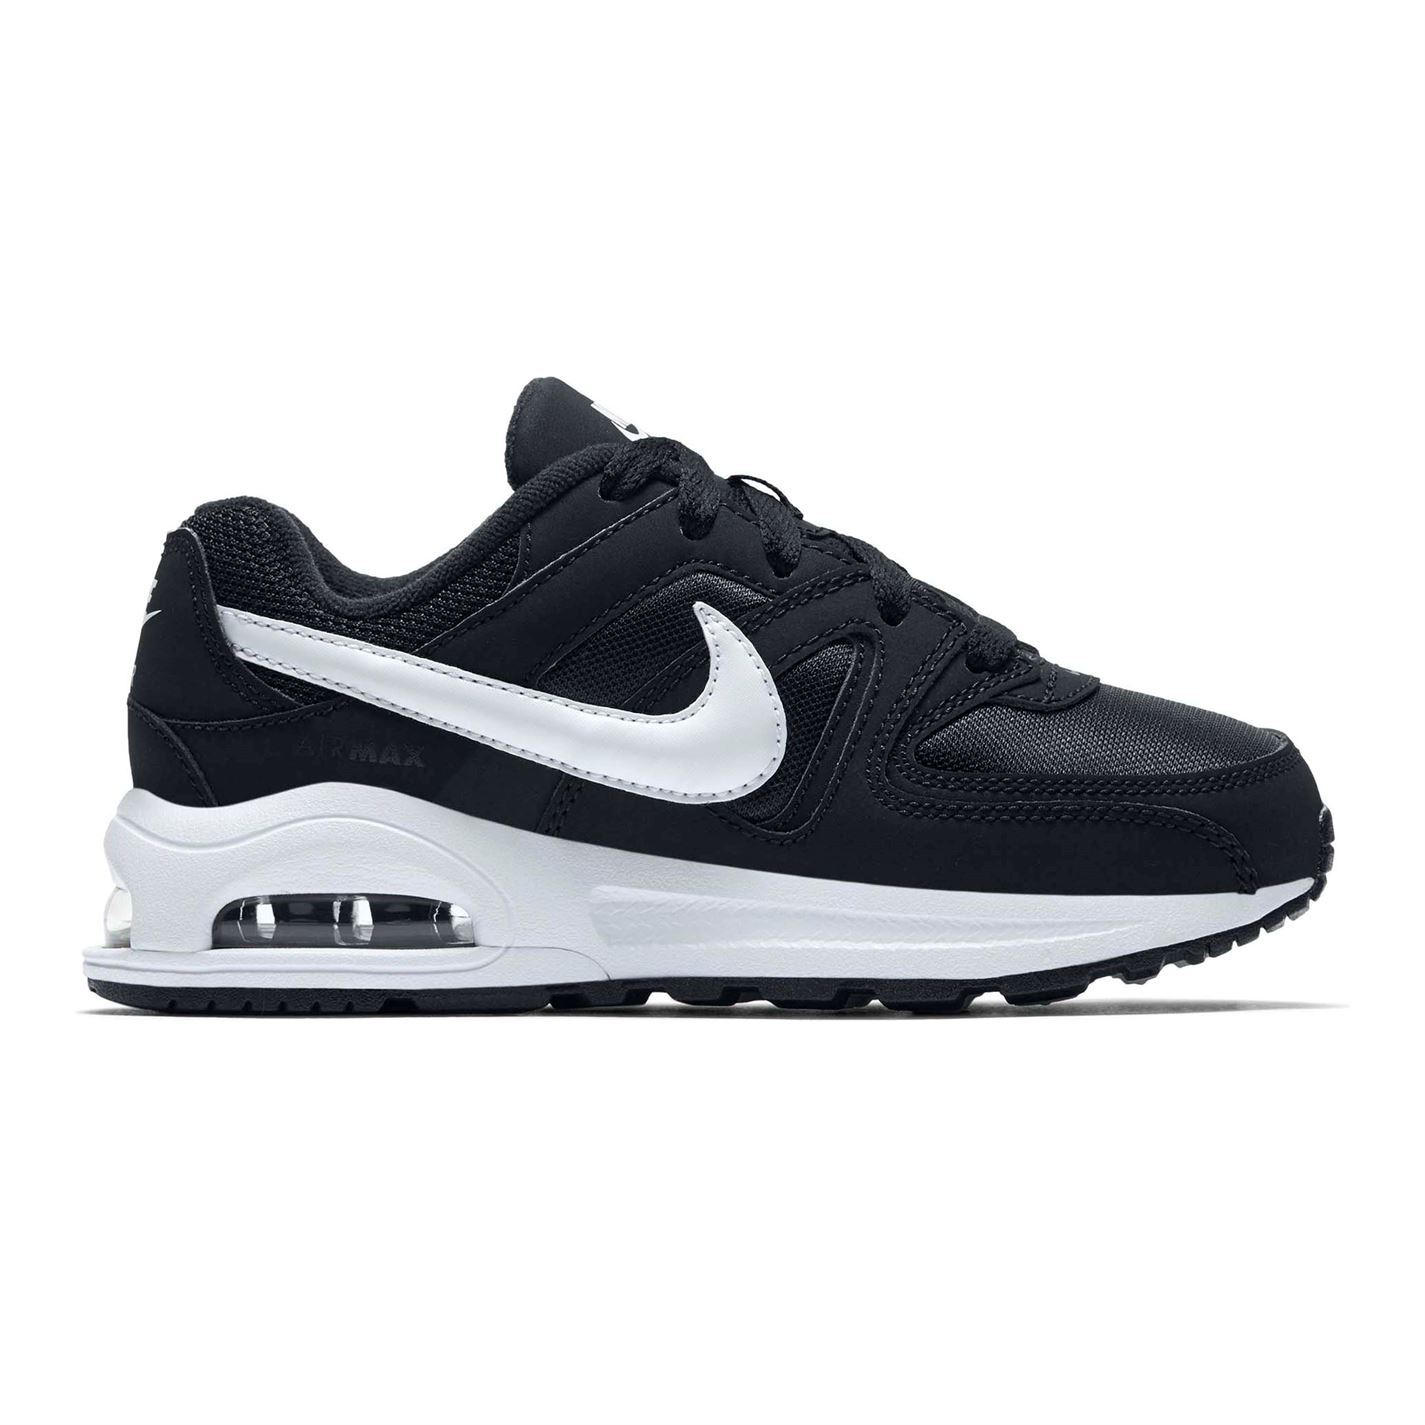 Details about Nike Air Max Command Trainers Childs Boys BlackWhite scarpa Sneakers Footwear